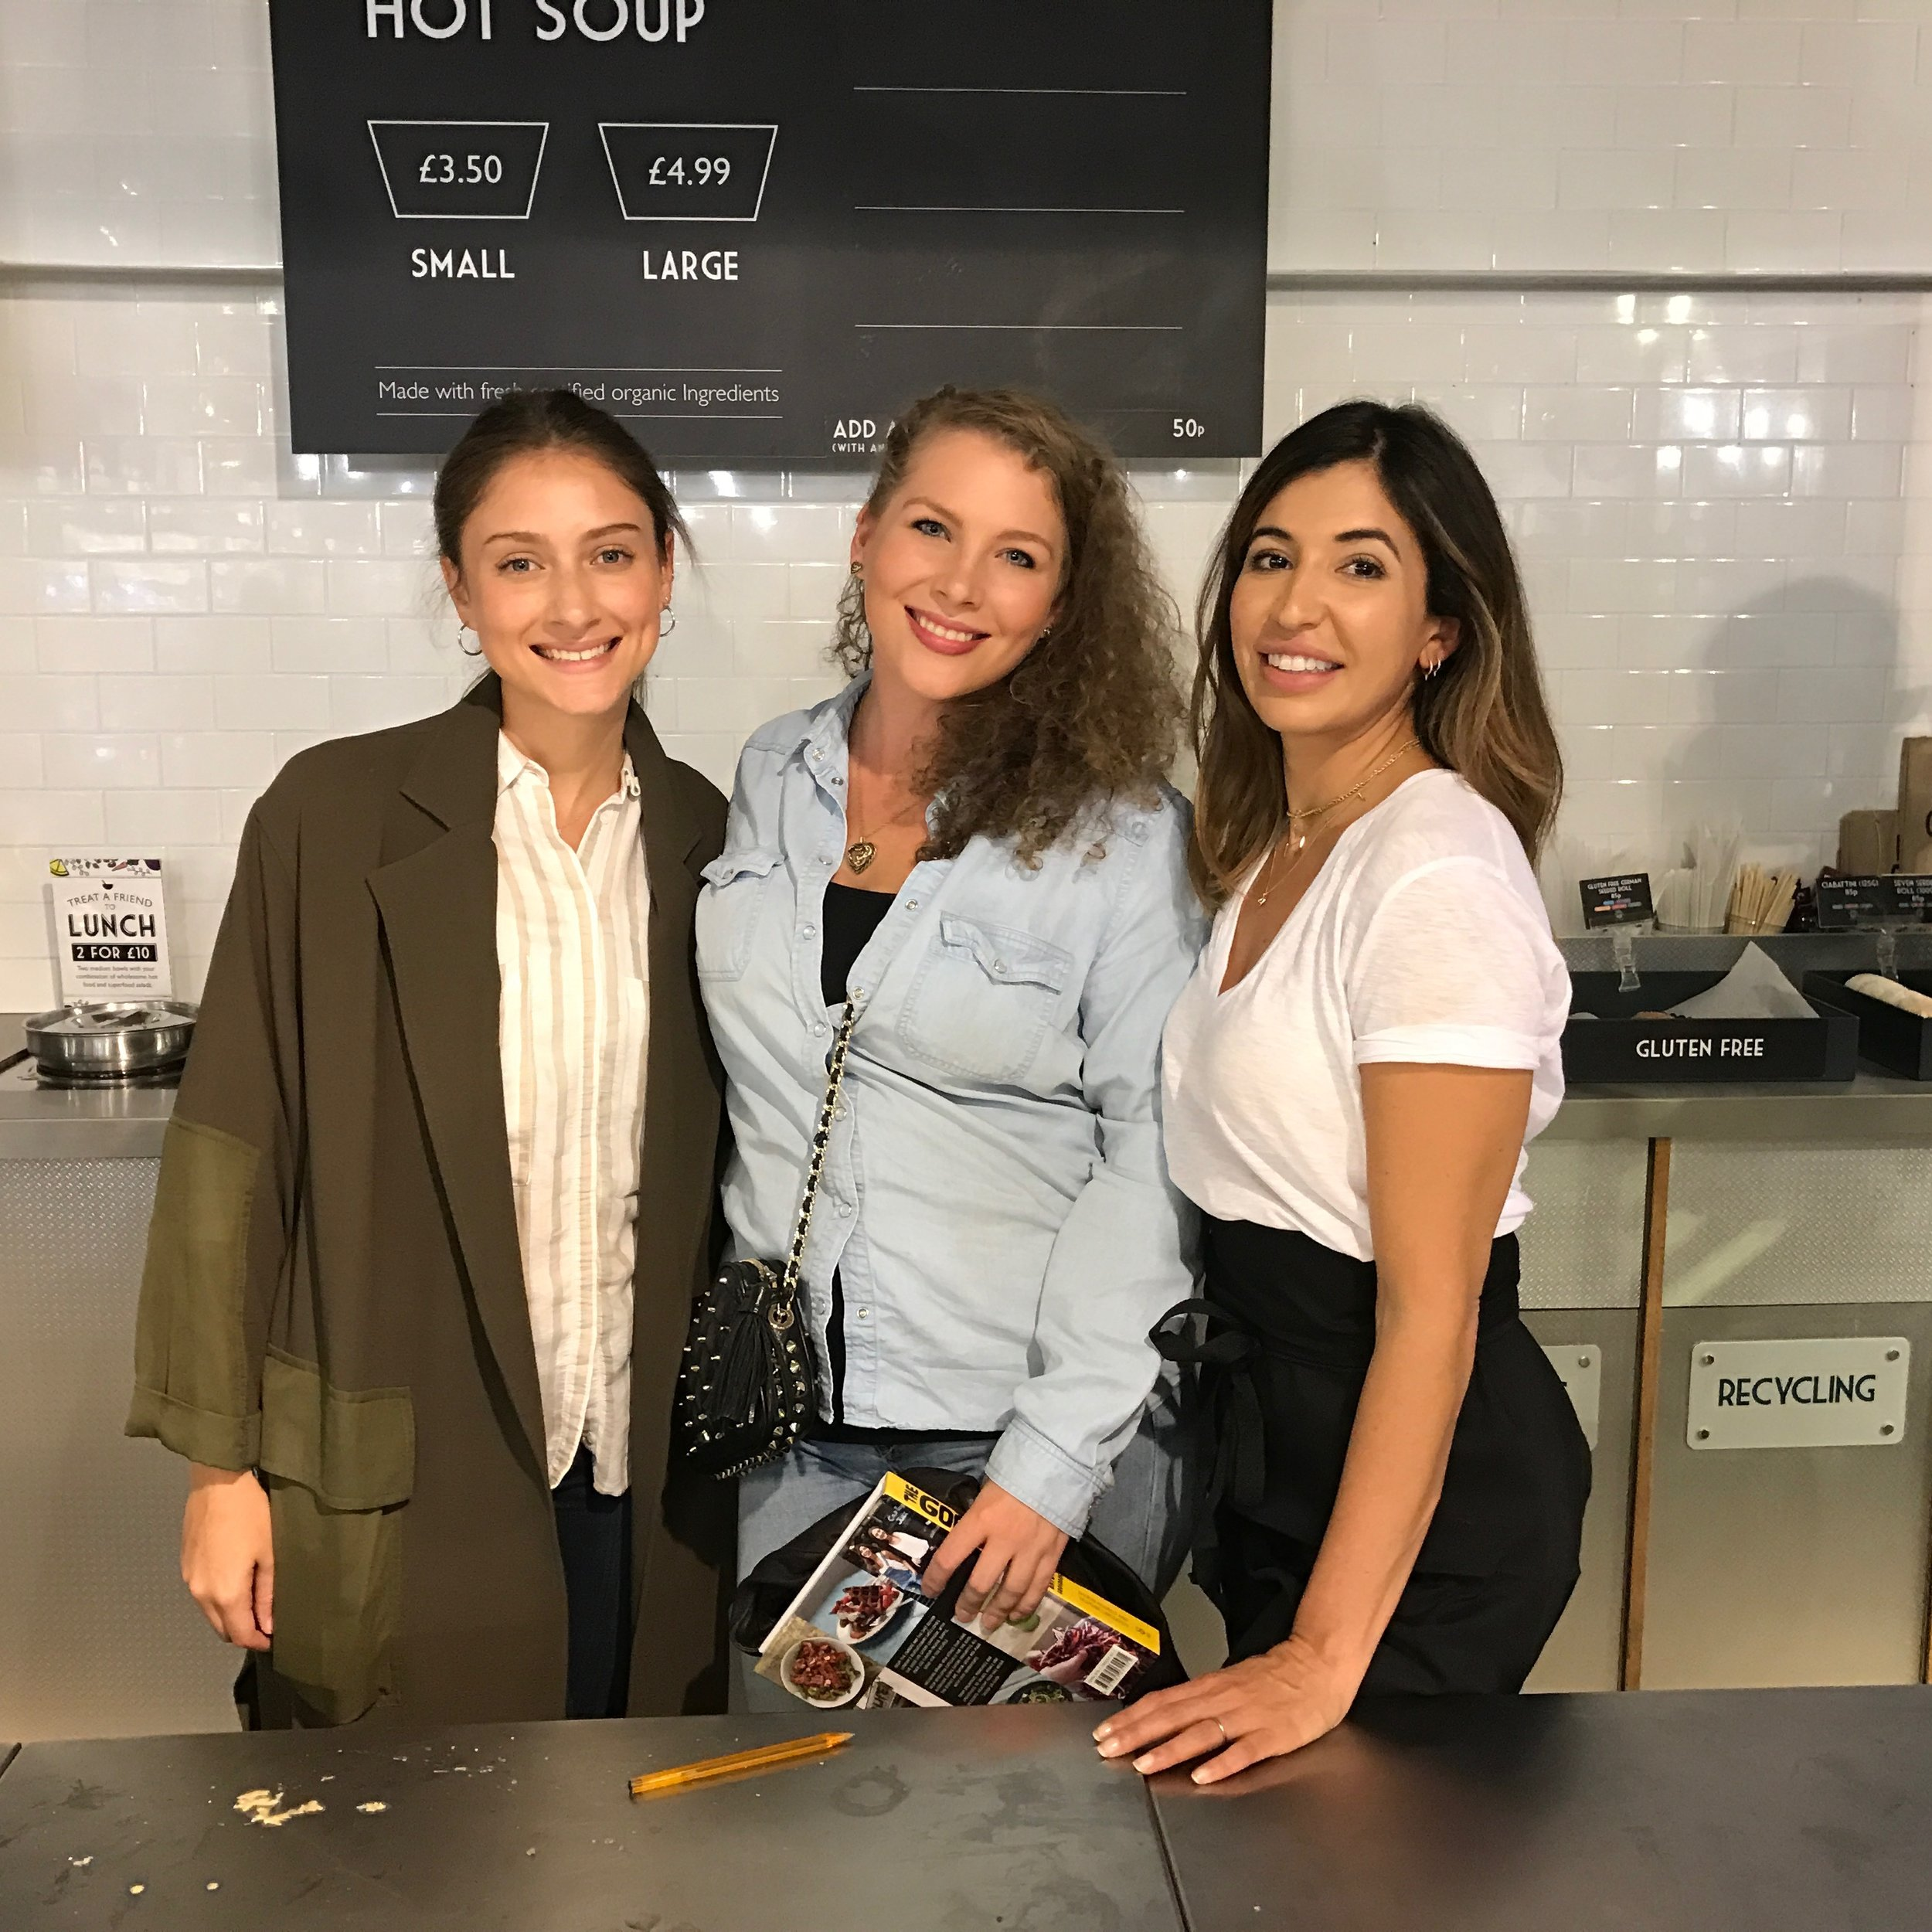 I moved to London to found Caulizza and start learning about the food industry. - From ambitions of starting London's first cauliflower pizzeria, I was quickly advised to start production of the bases instead. Pic from inspirational evening spent with the founders of The Good Life Eatery, Yasmine Larizadeh and Shirin Kouros.